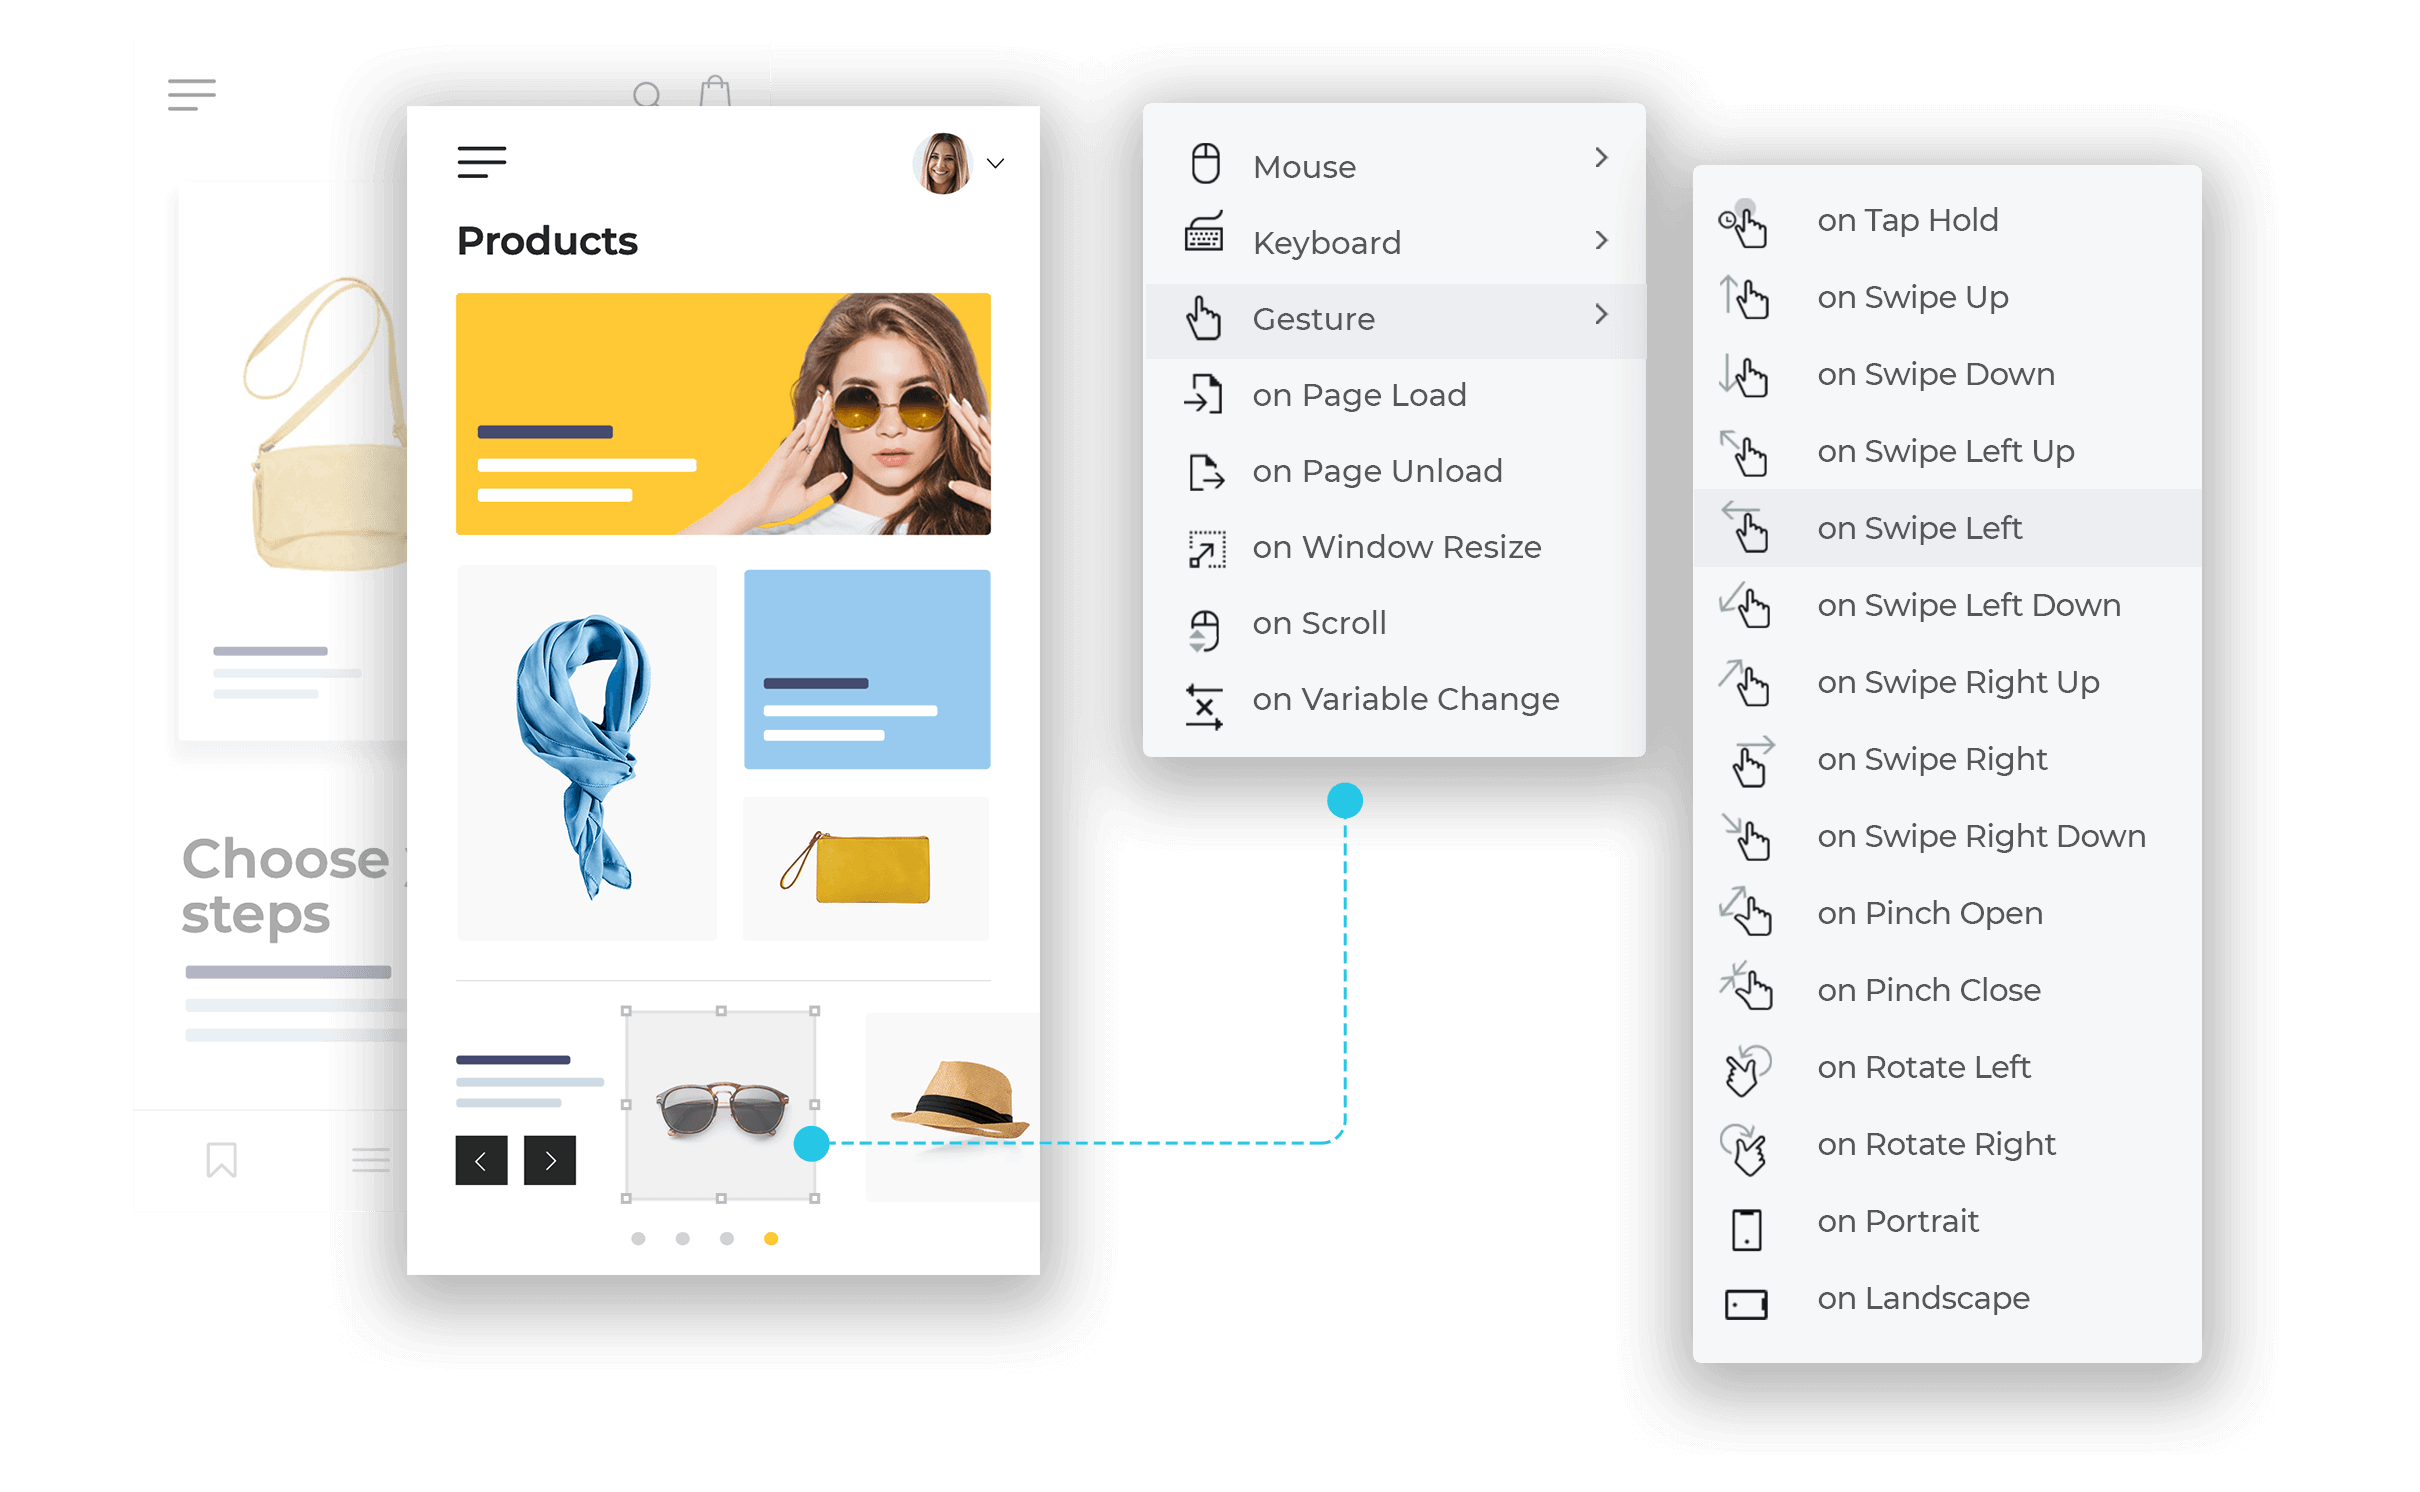 Web interactions and mobile gestures for UI prototypes